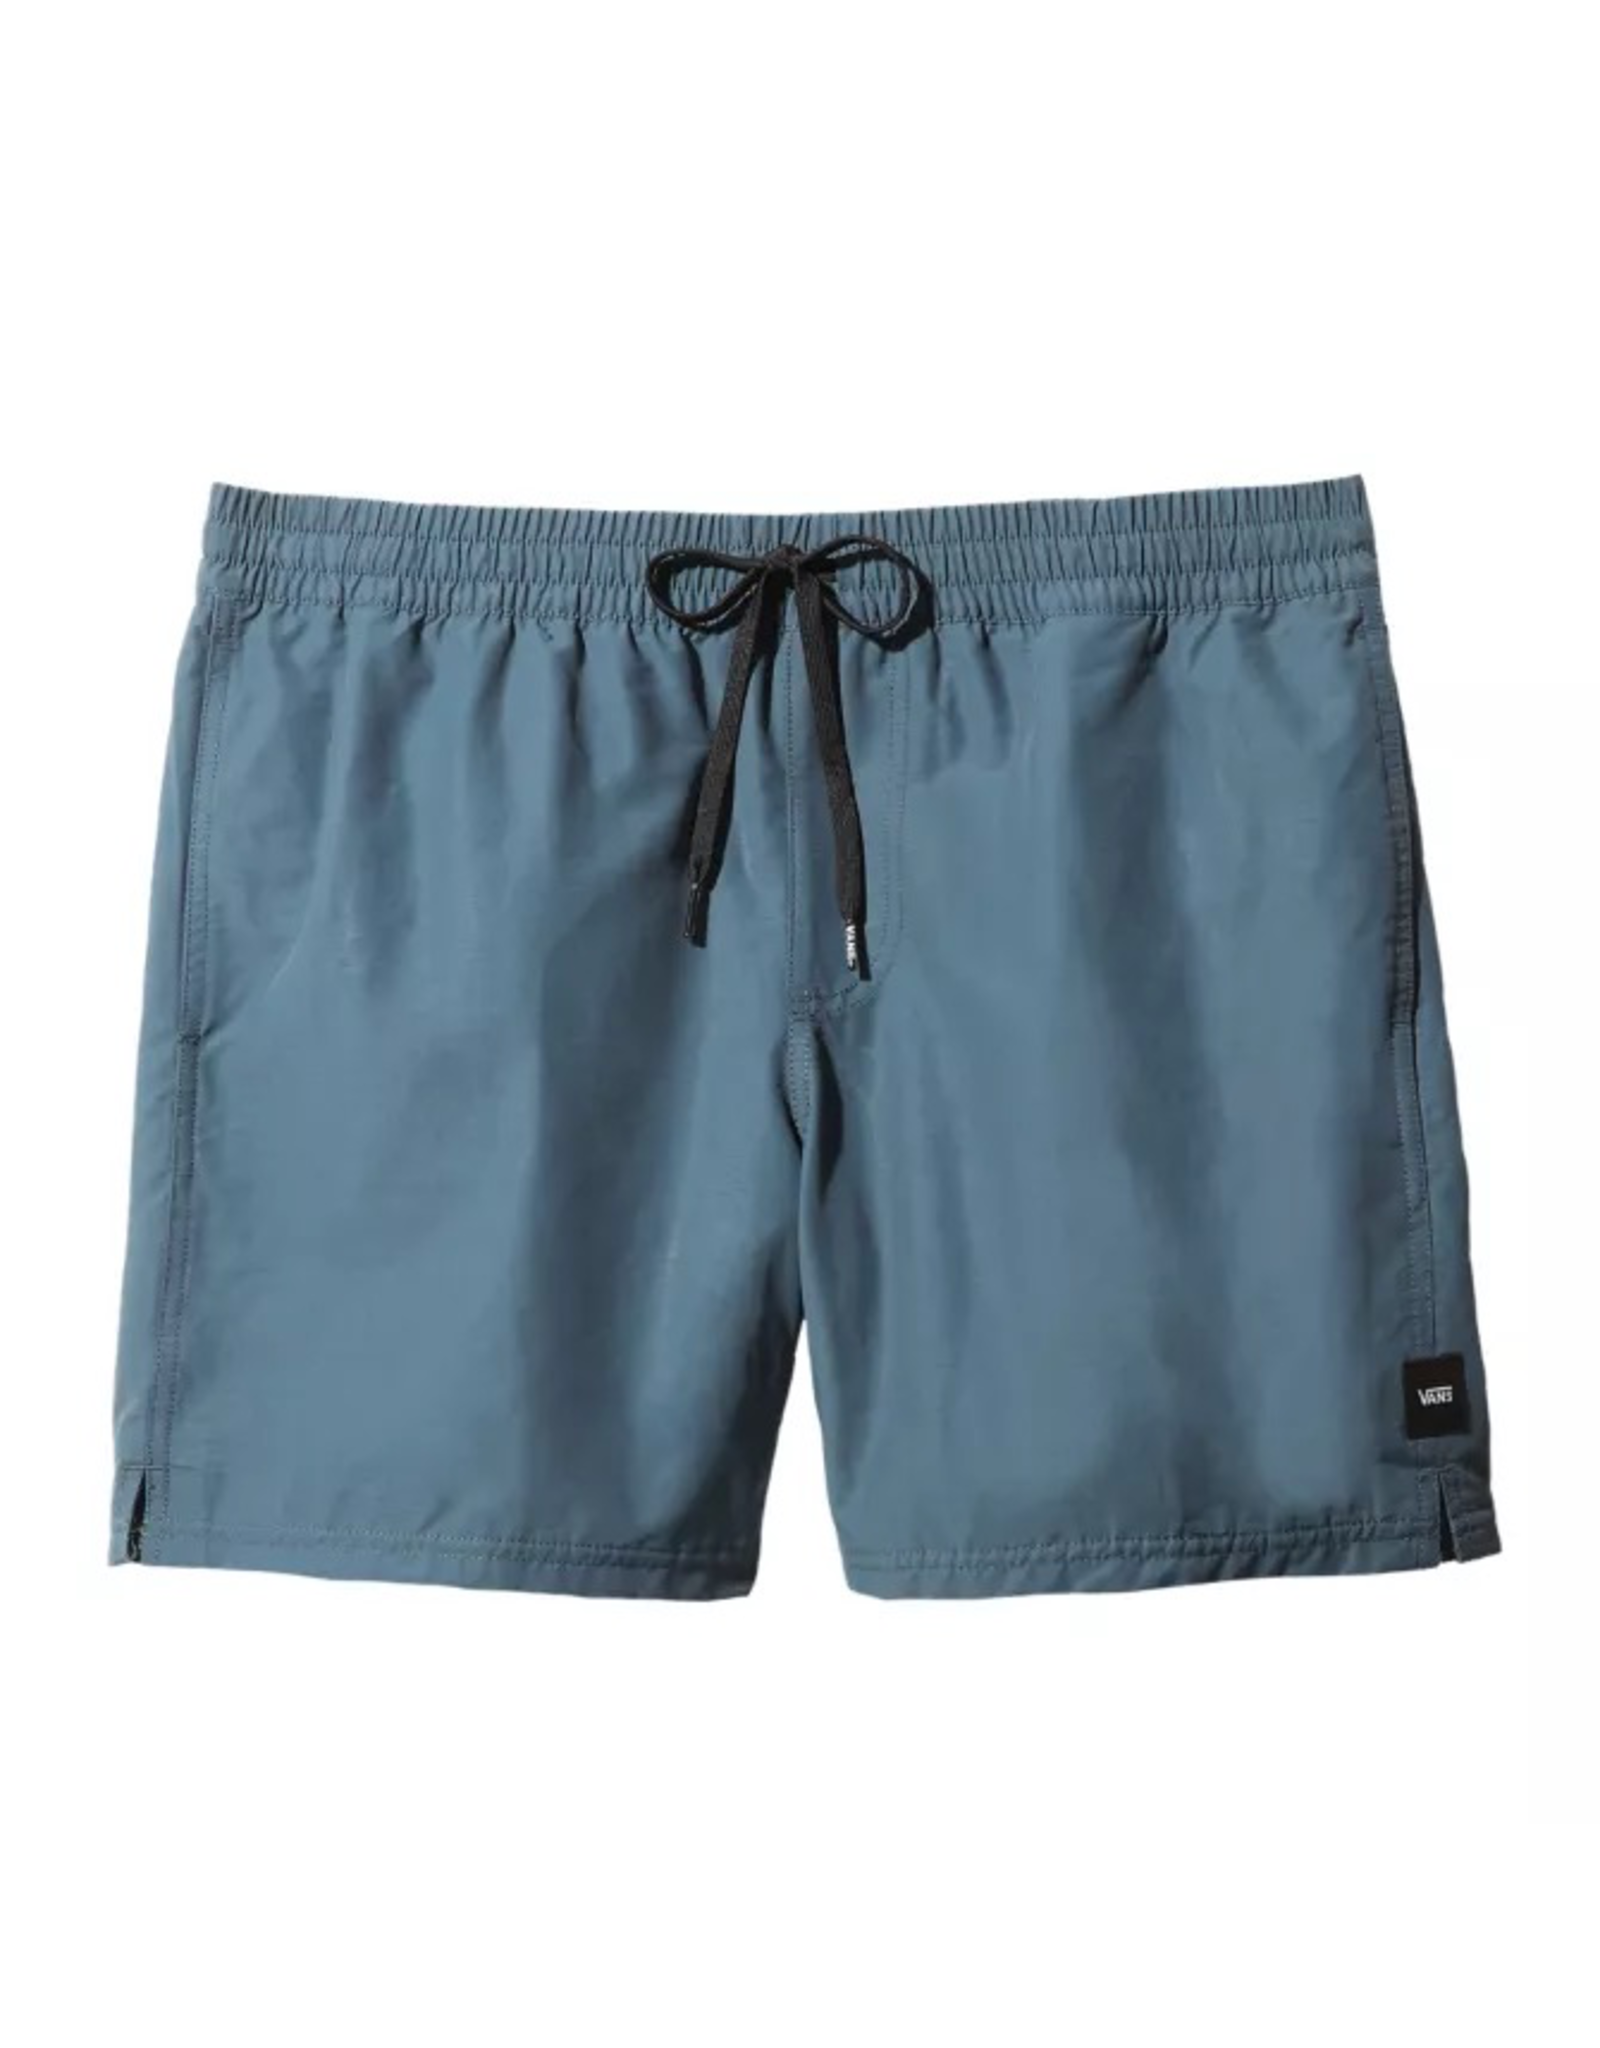 "Vans Primary Volley II 17"" Boardshort"